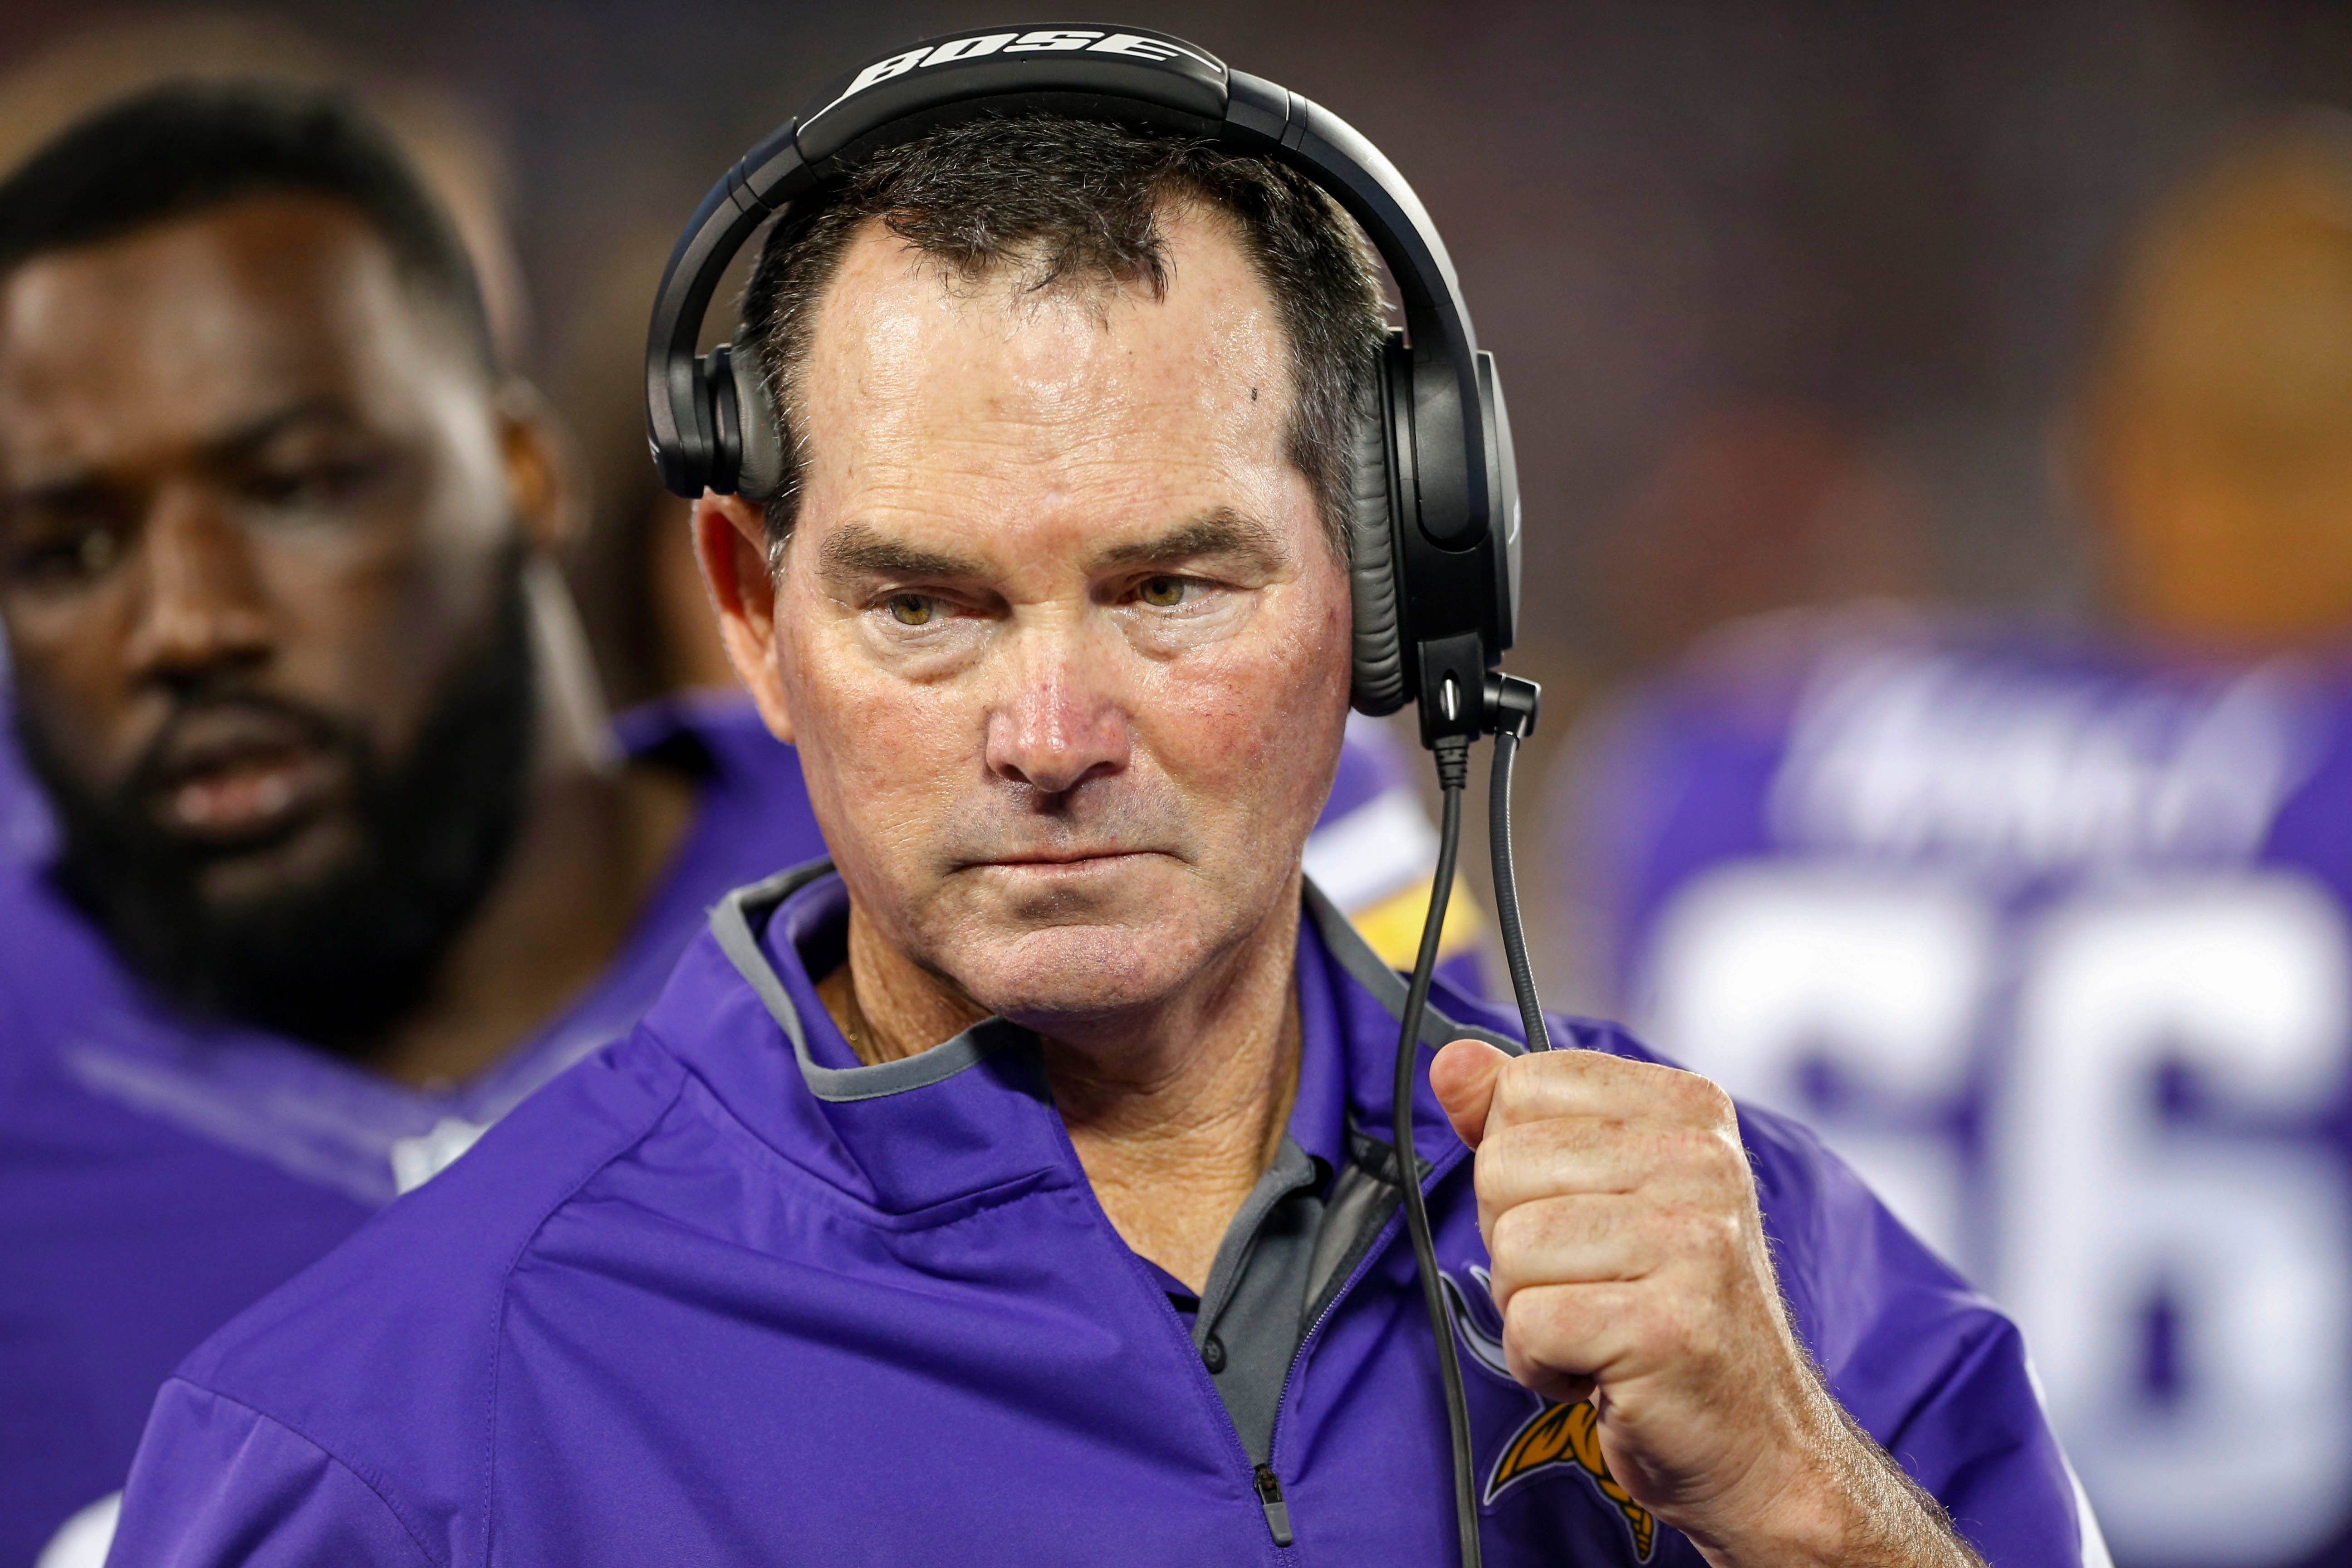 The look of a man that may or may not want to kill his kicker.